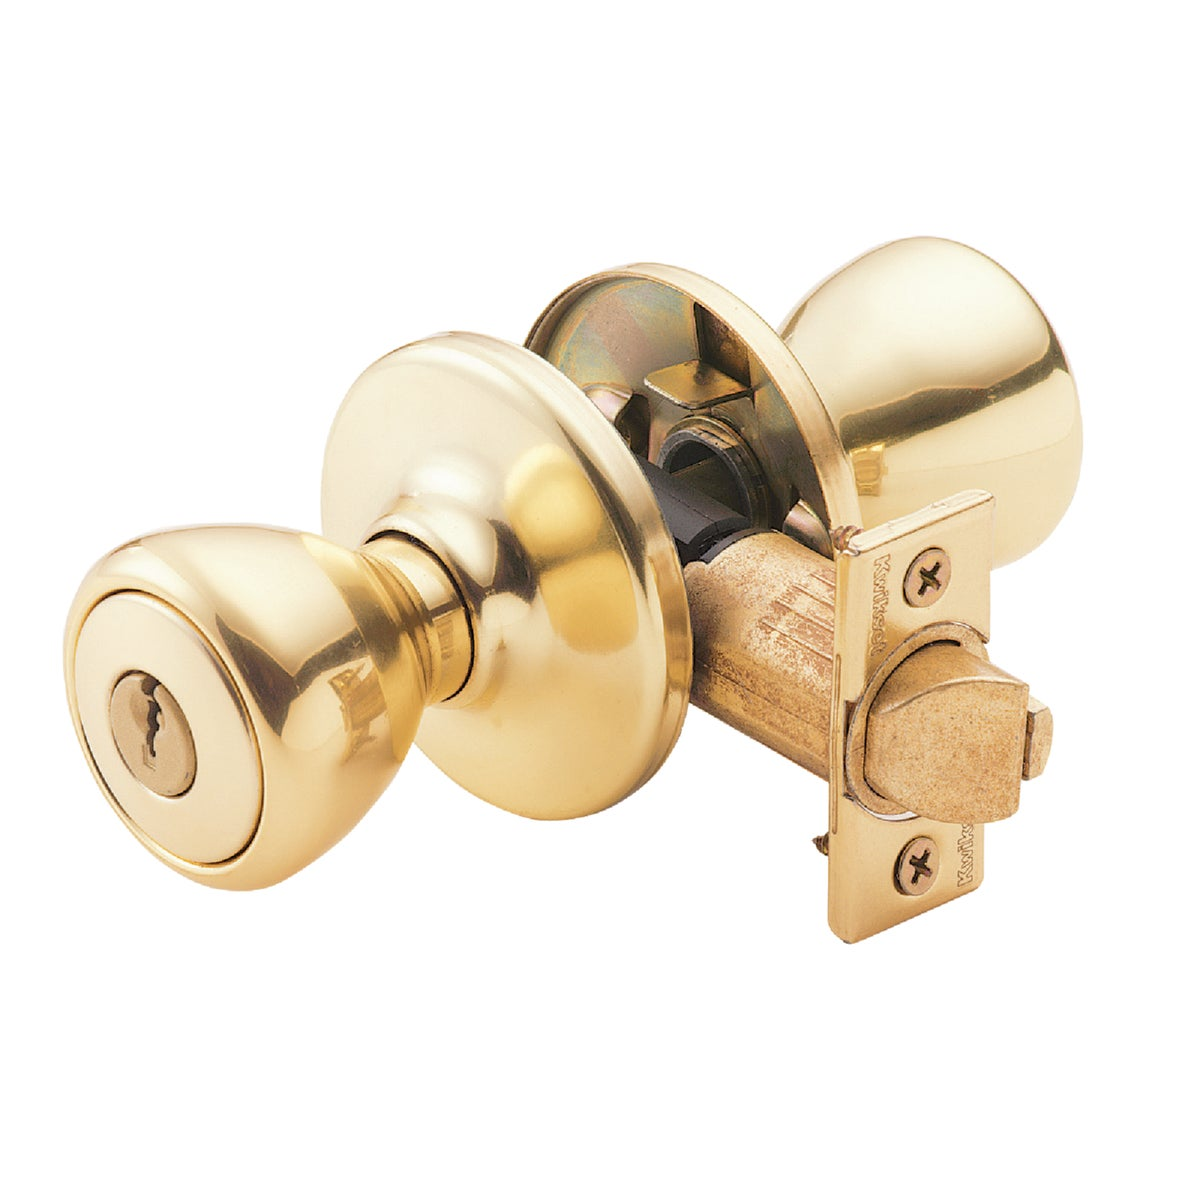 PB CP TYLO ENTRY LOCK - 400T 3 CP K6 by Kwikset